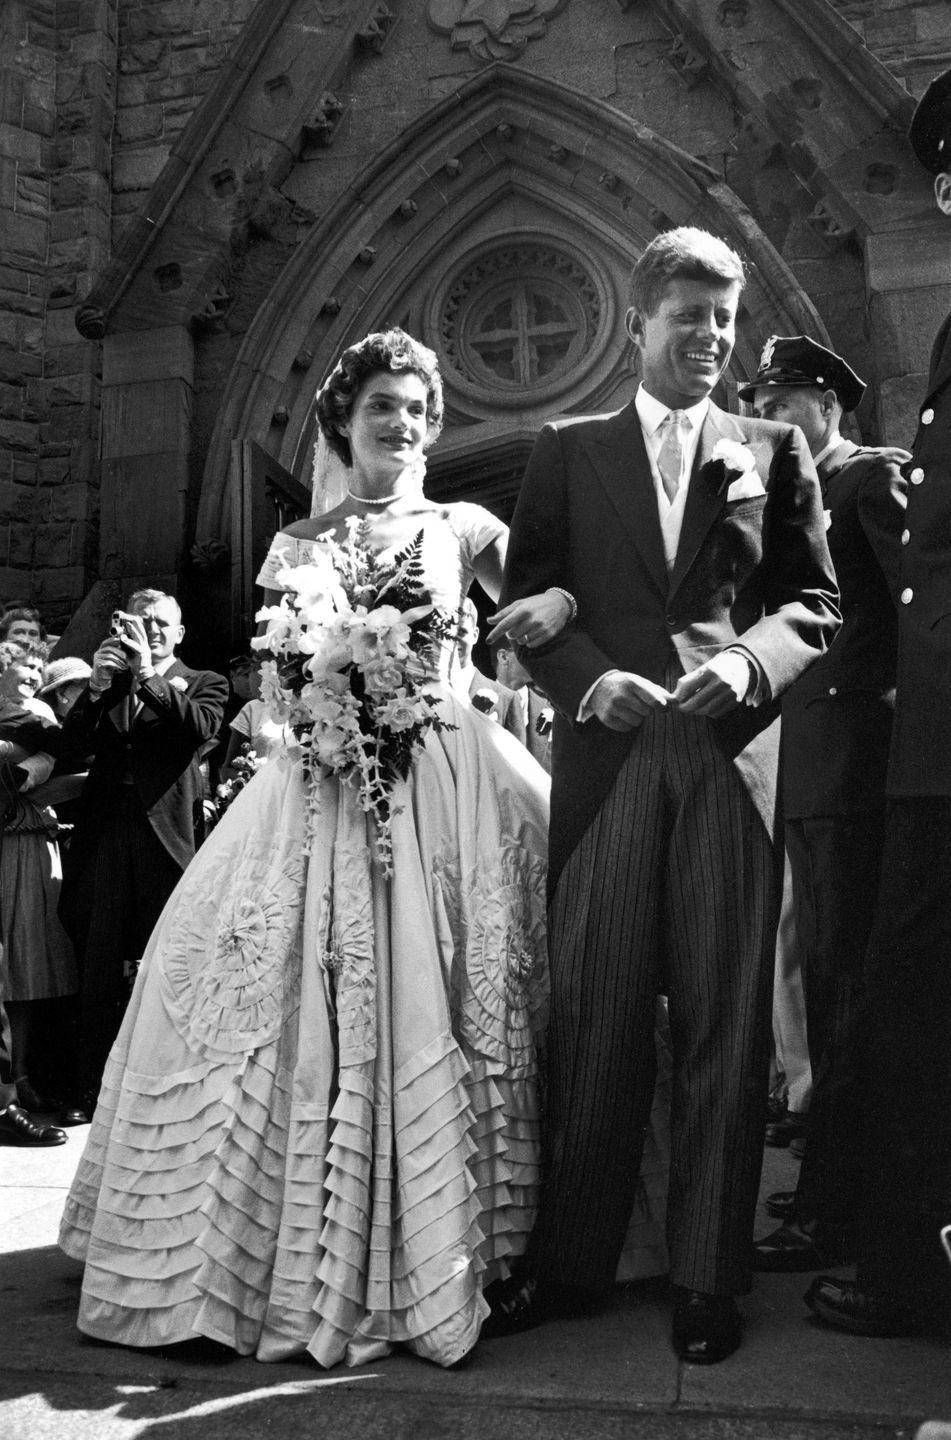 """<p>In one of the most high-profile weddings of the 20th century, <a href=""""http://time.com/3494367/photos-jfk-and-jackies-wedding-1953/"""" rel=""""nofollow noopener"""" target=""""_blank"""" data-ylk=""""slk:Jacqueline Bouvier and former President John F. Kennedy"""" class=""""link rapid-noclick-resp"""">Jacqueline Bouvier and former President John F. Kennedy</a> were married on September 12, 1953 in St. Mary's Church. They were married until Kennedy's assassination in 1963. </p>"""